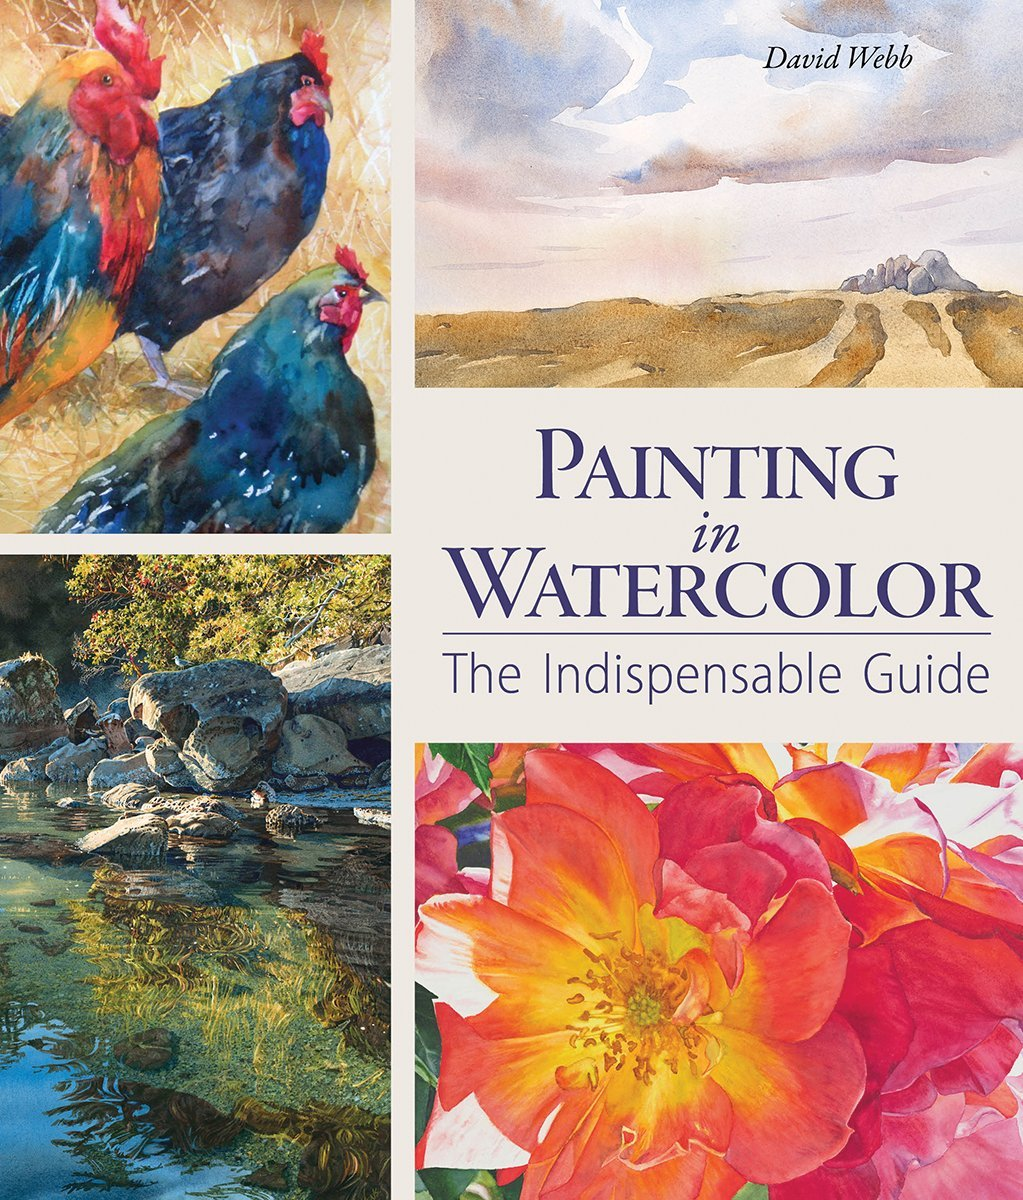 Watercolor artist magazine review - Painting In Watercolor The Indispensable Guide David Webb 9781770857384 Amazon Com Books